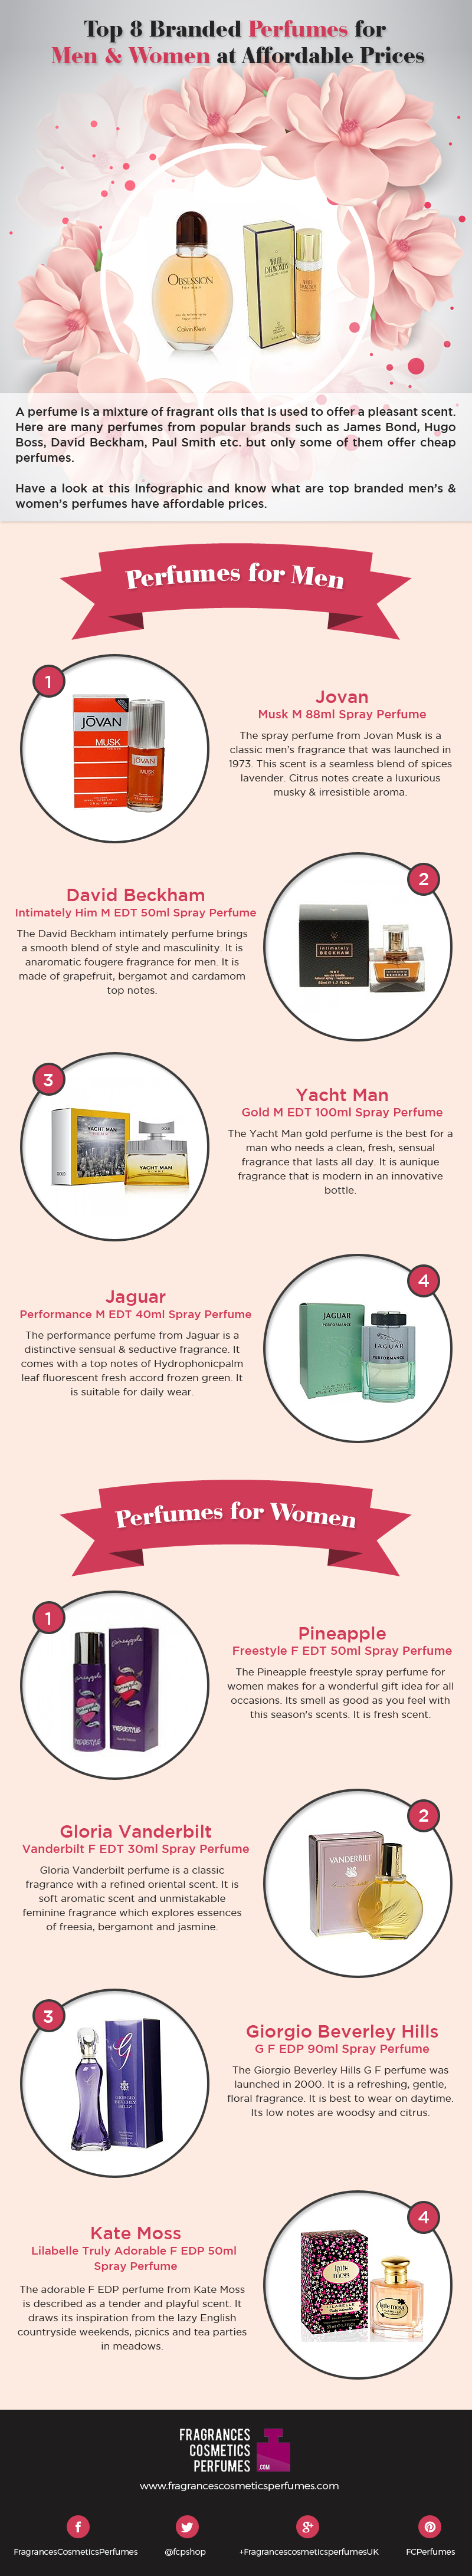 Best Quality Henley Watches For Men And Women [Infographic]